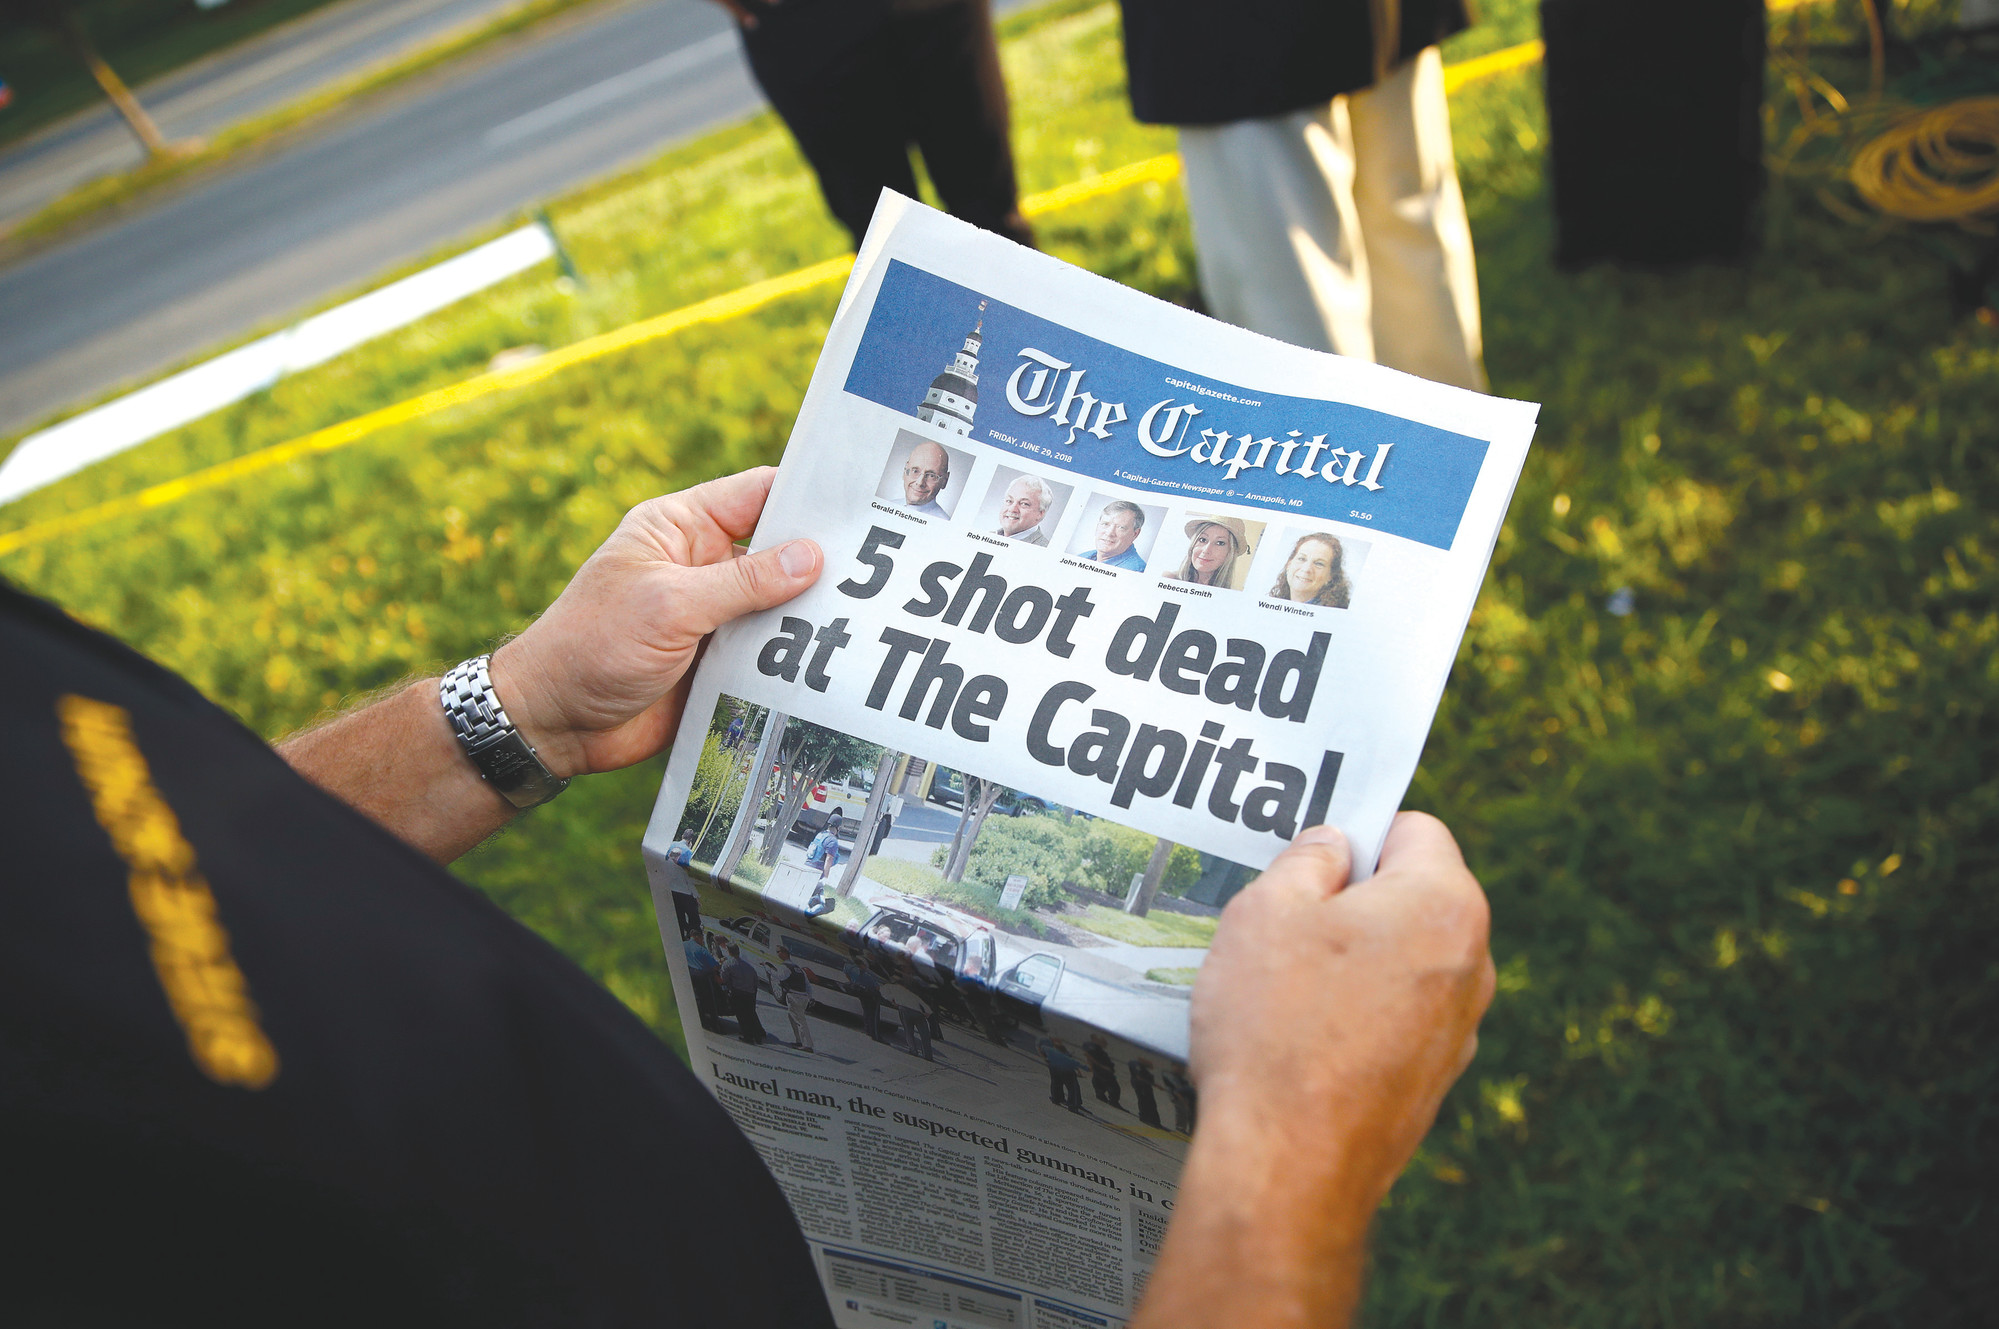 Capital Gazette reporter describes horror inside newsroom